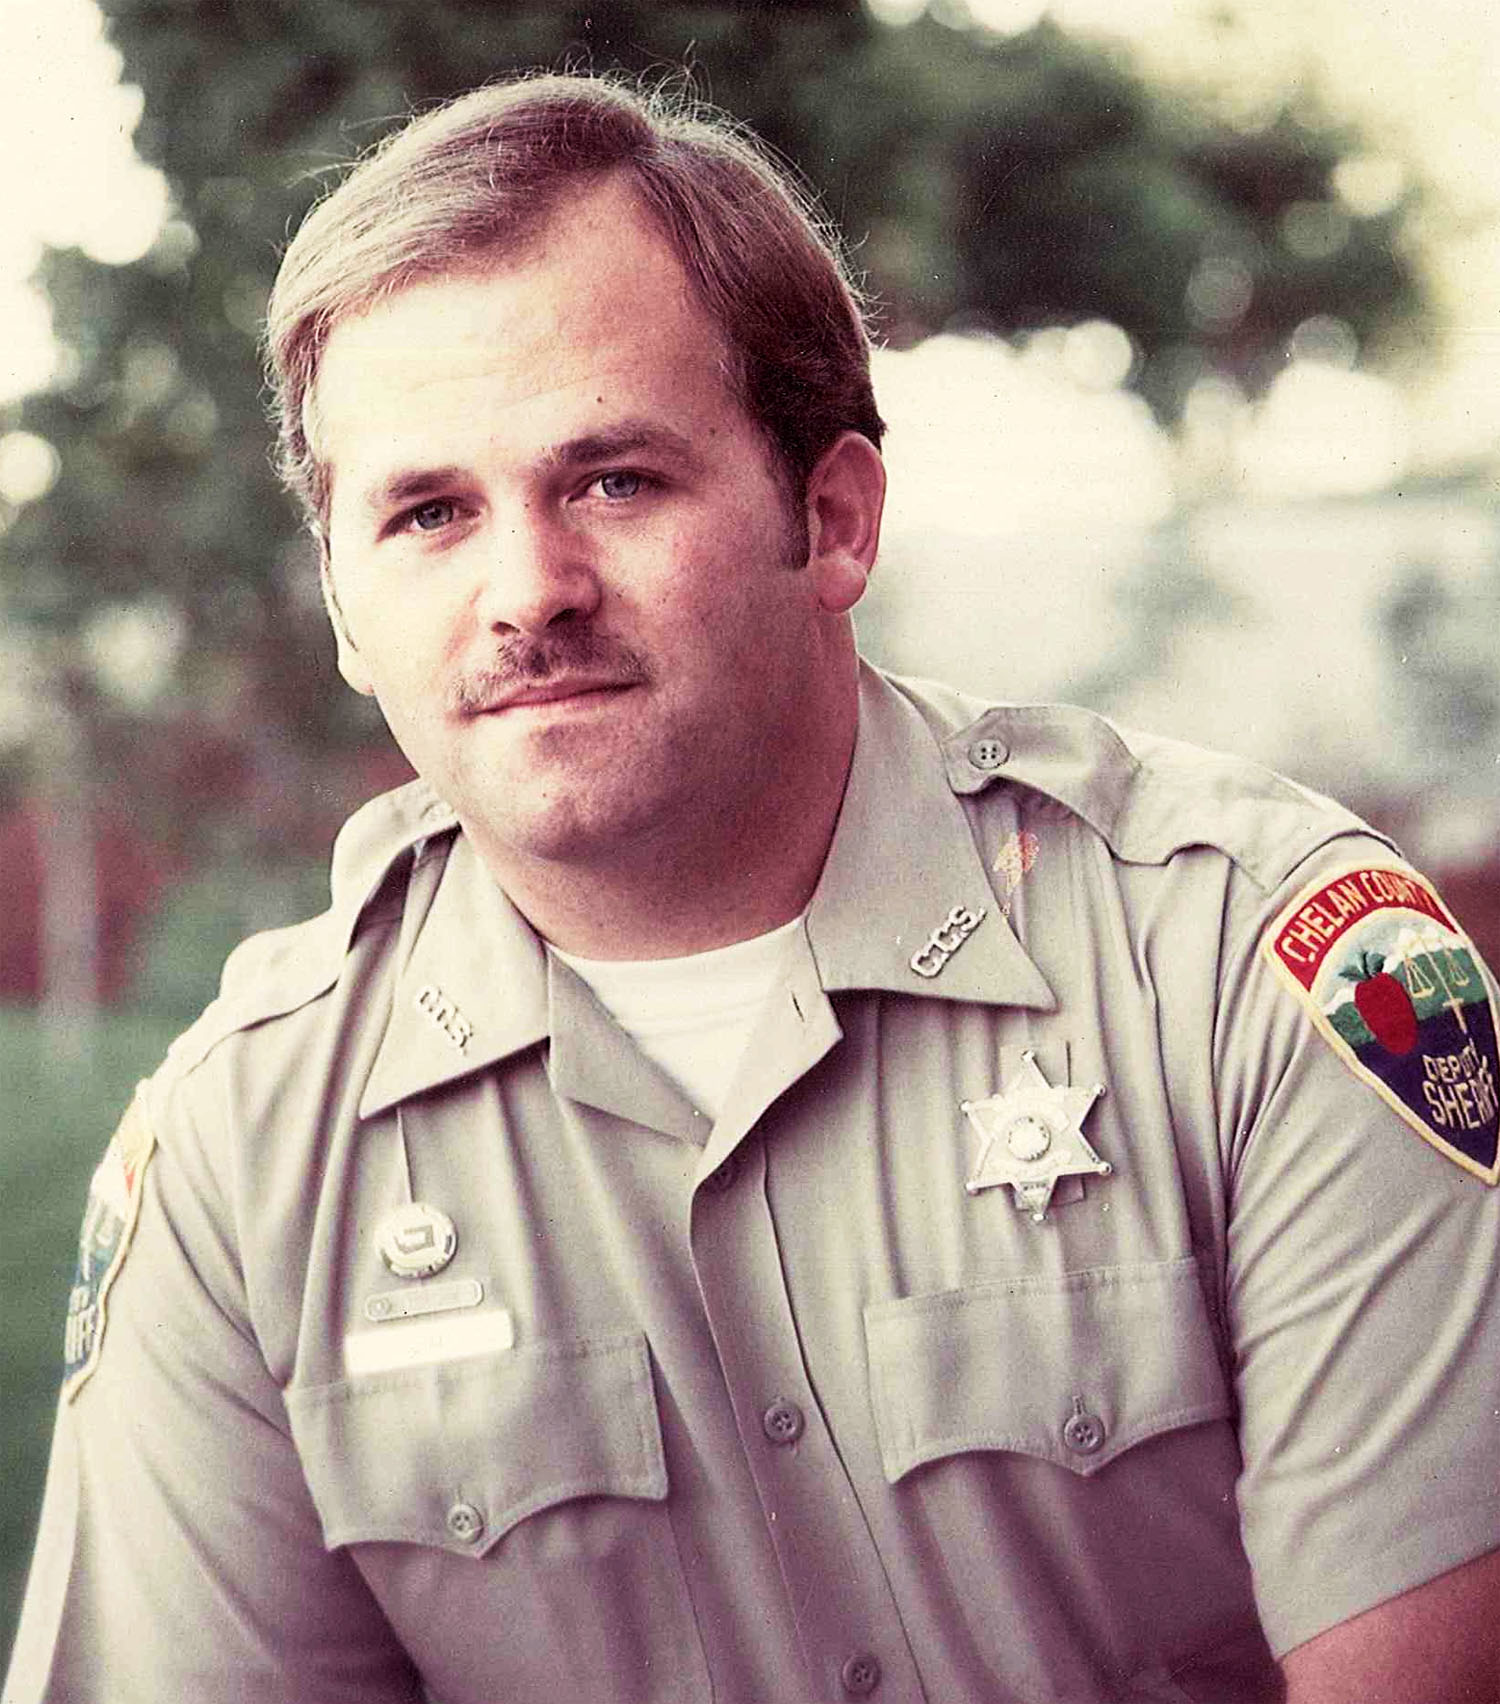 Deputy Sheriff Winfield Scott Edie | Chelan County Sheriff's Office, Washington